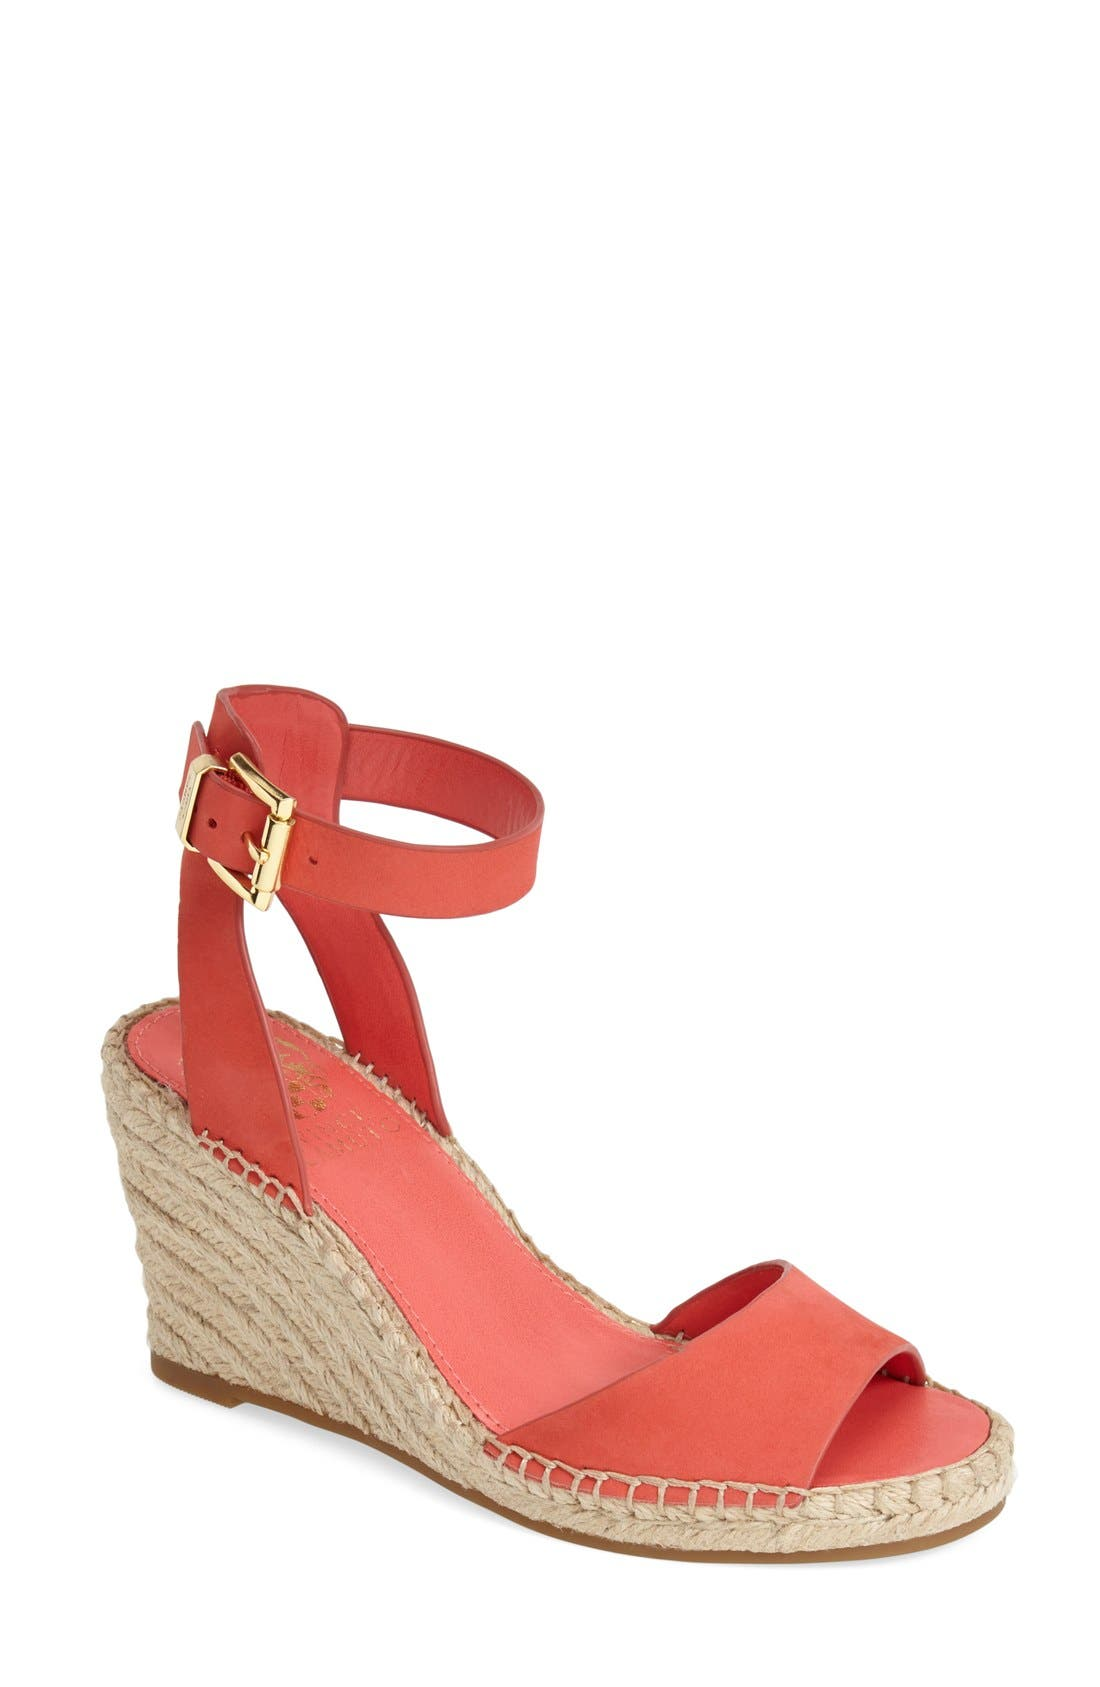 Main Image - Vince Camuto 'Tagger' Espadrille Wedge Sandal (Women)